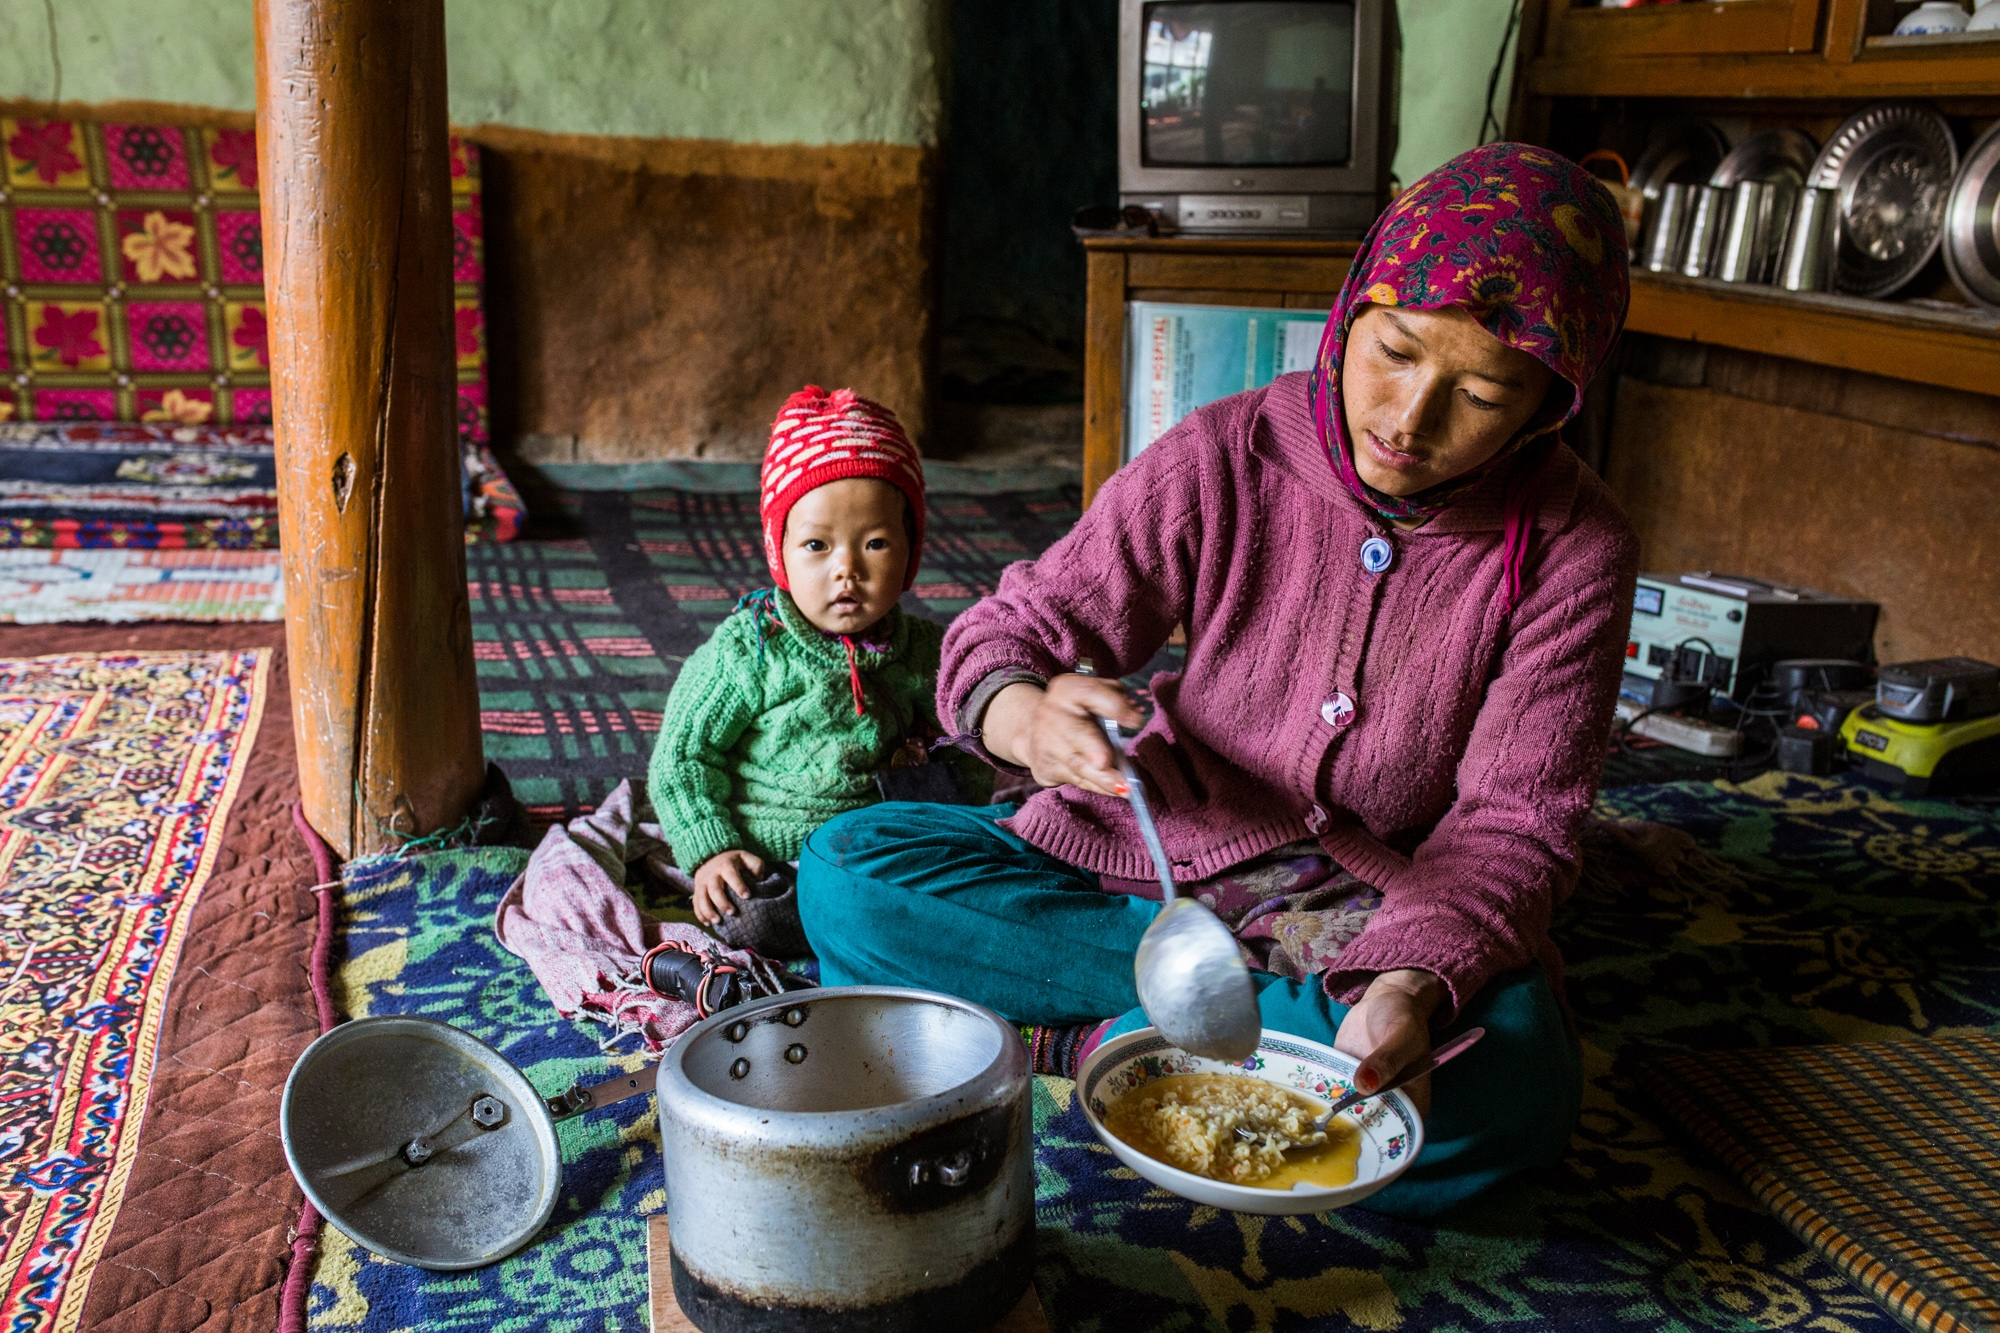 A mother serves a meal of imported instant noodles inside her home in the Zanskar Himalaya, India.